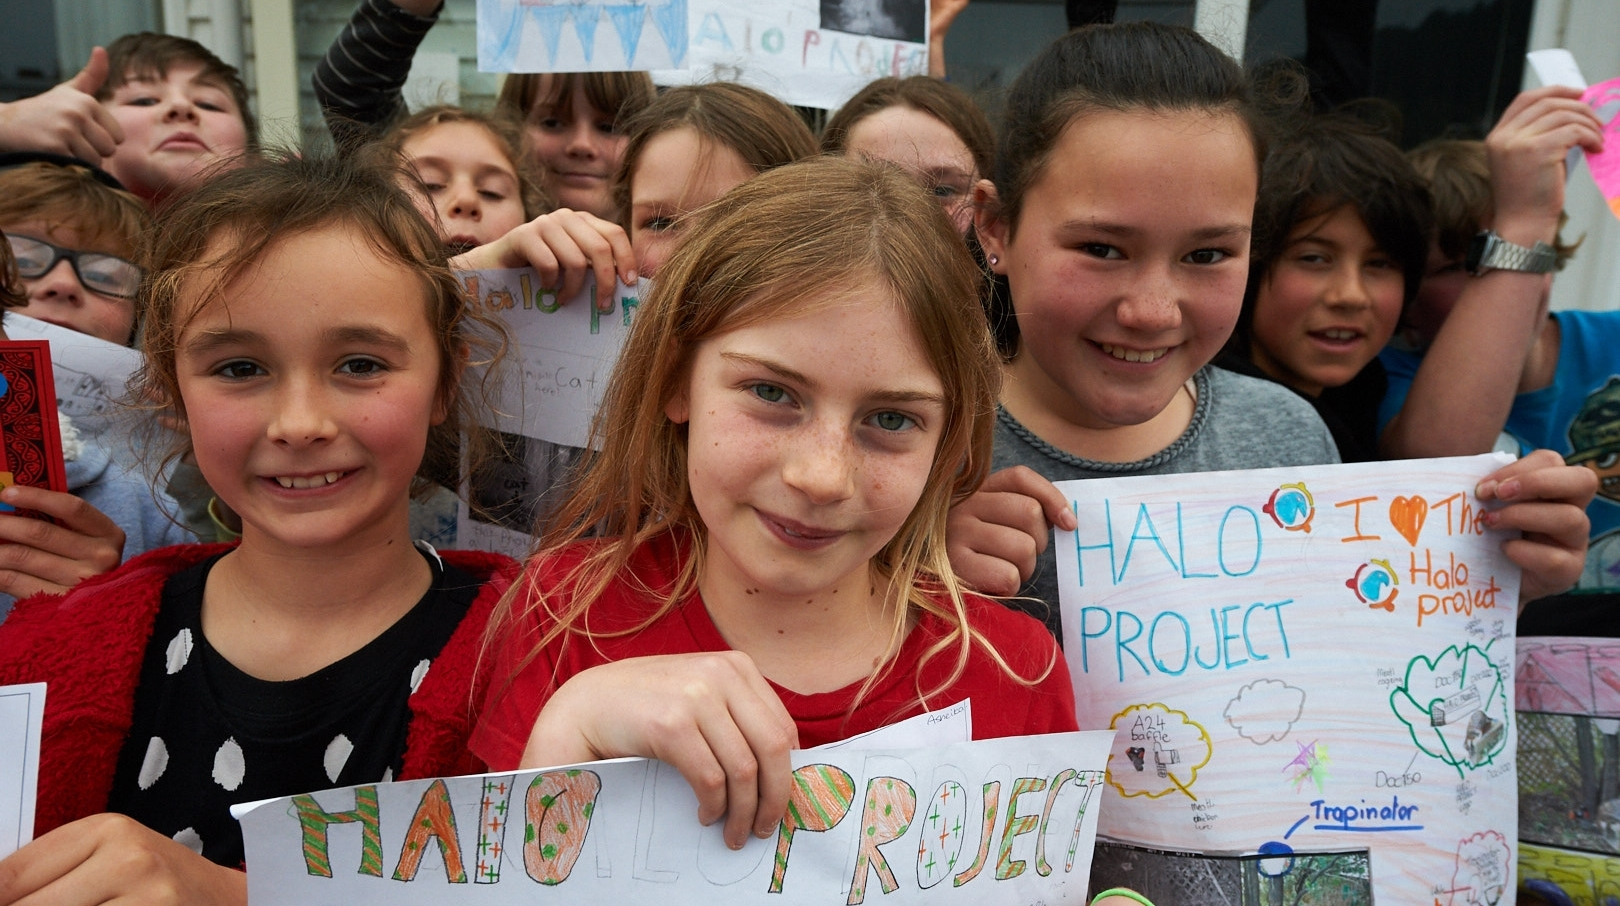 Room 4 kids at Port Chalmers School with their Halo Project posters